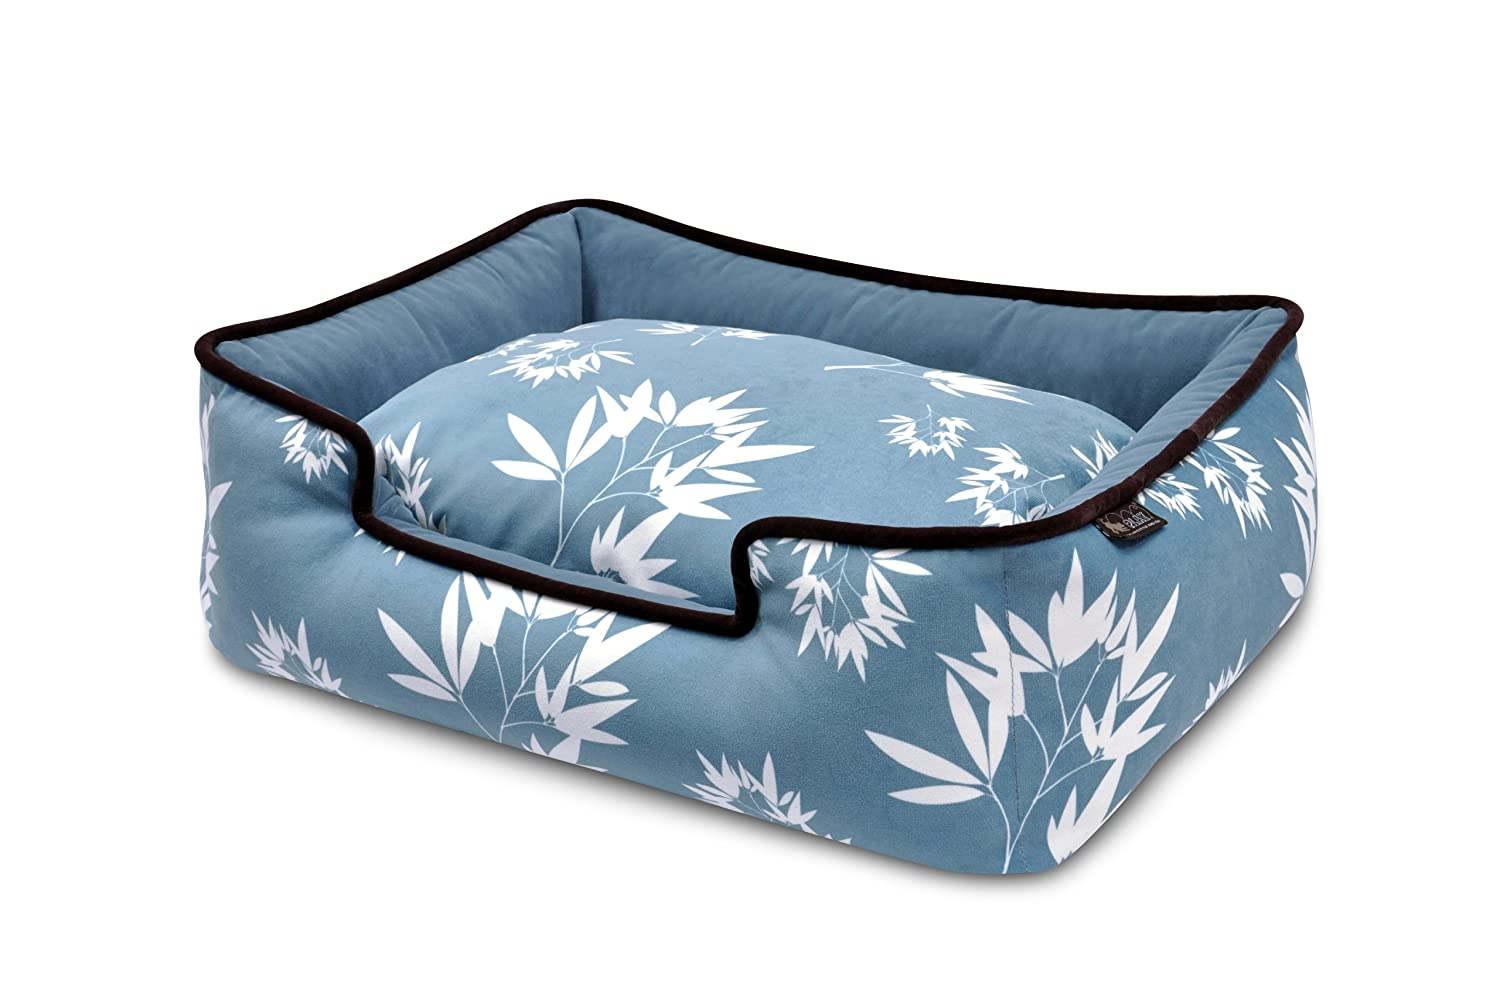 bluee  Bamboo MediumP.L.A.Y. (Pet Lifestyle And You) Lounge Bed  Denim  Brown  M